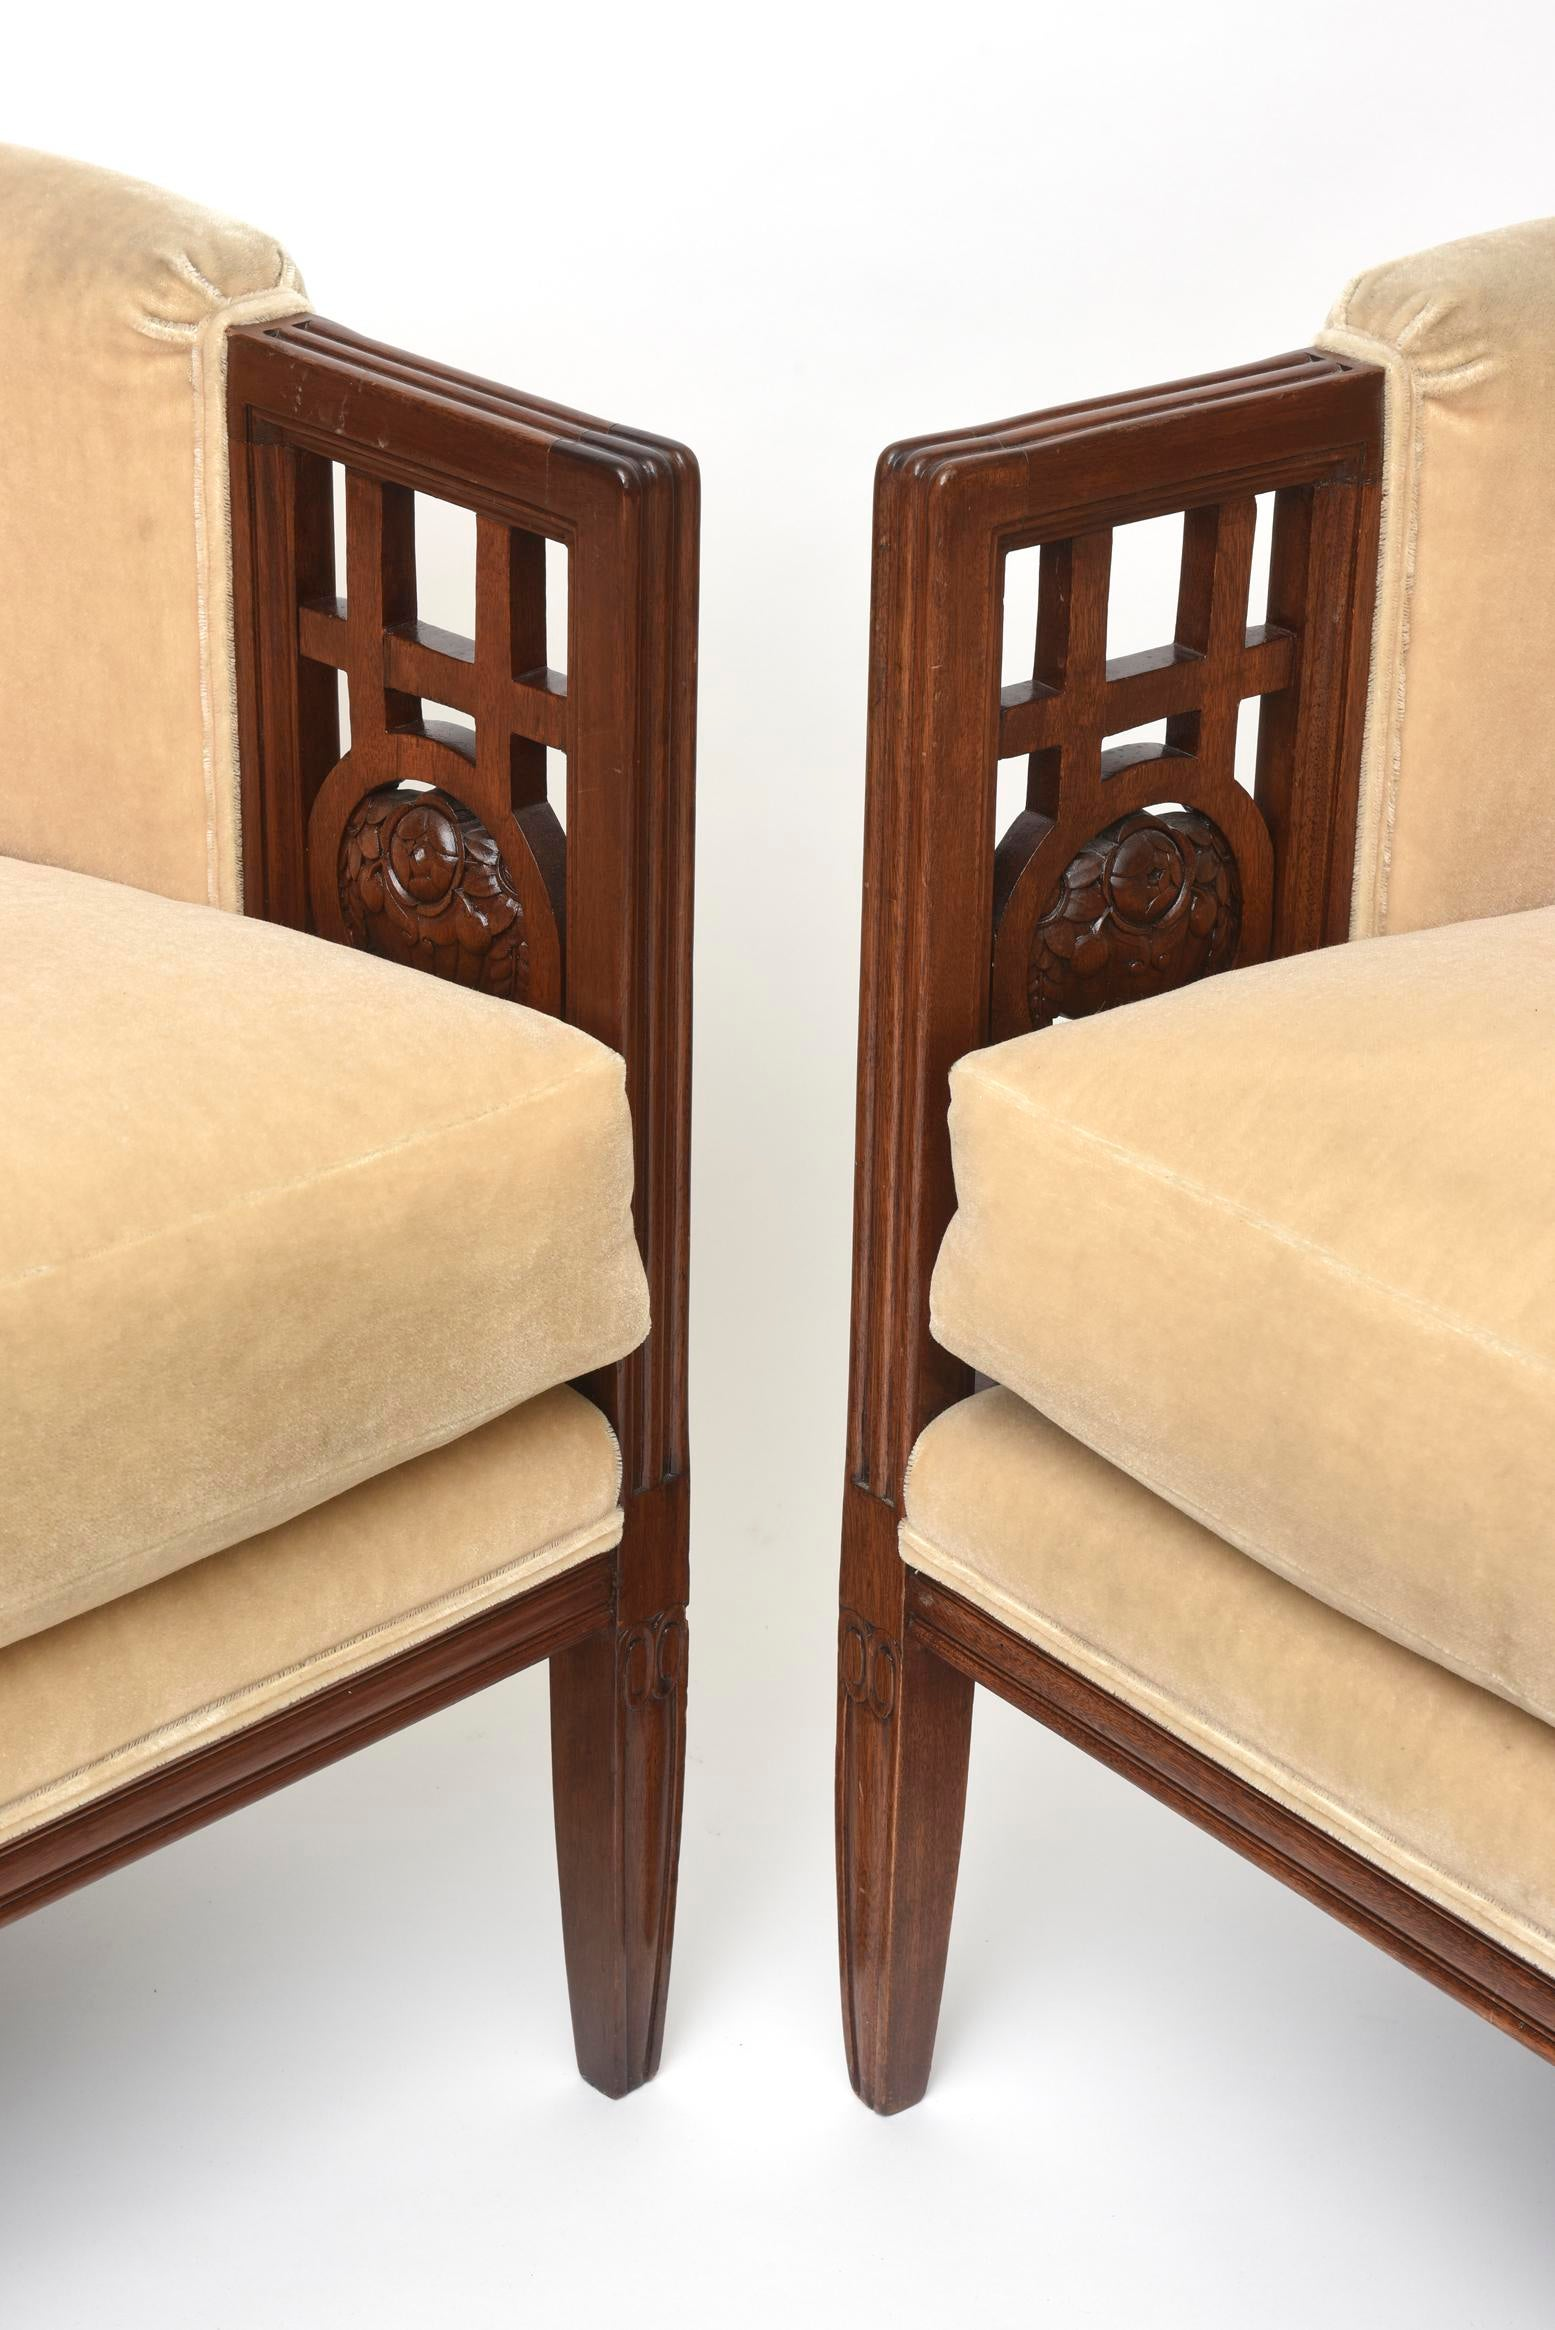 Fine Pair Of French Art Deco Mahogany Chairs Paul Follot